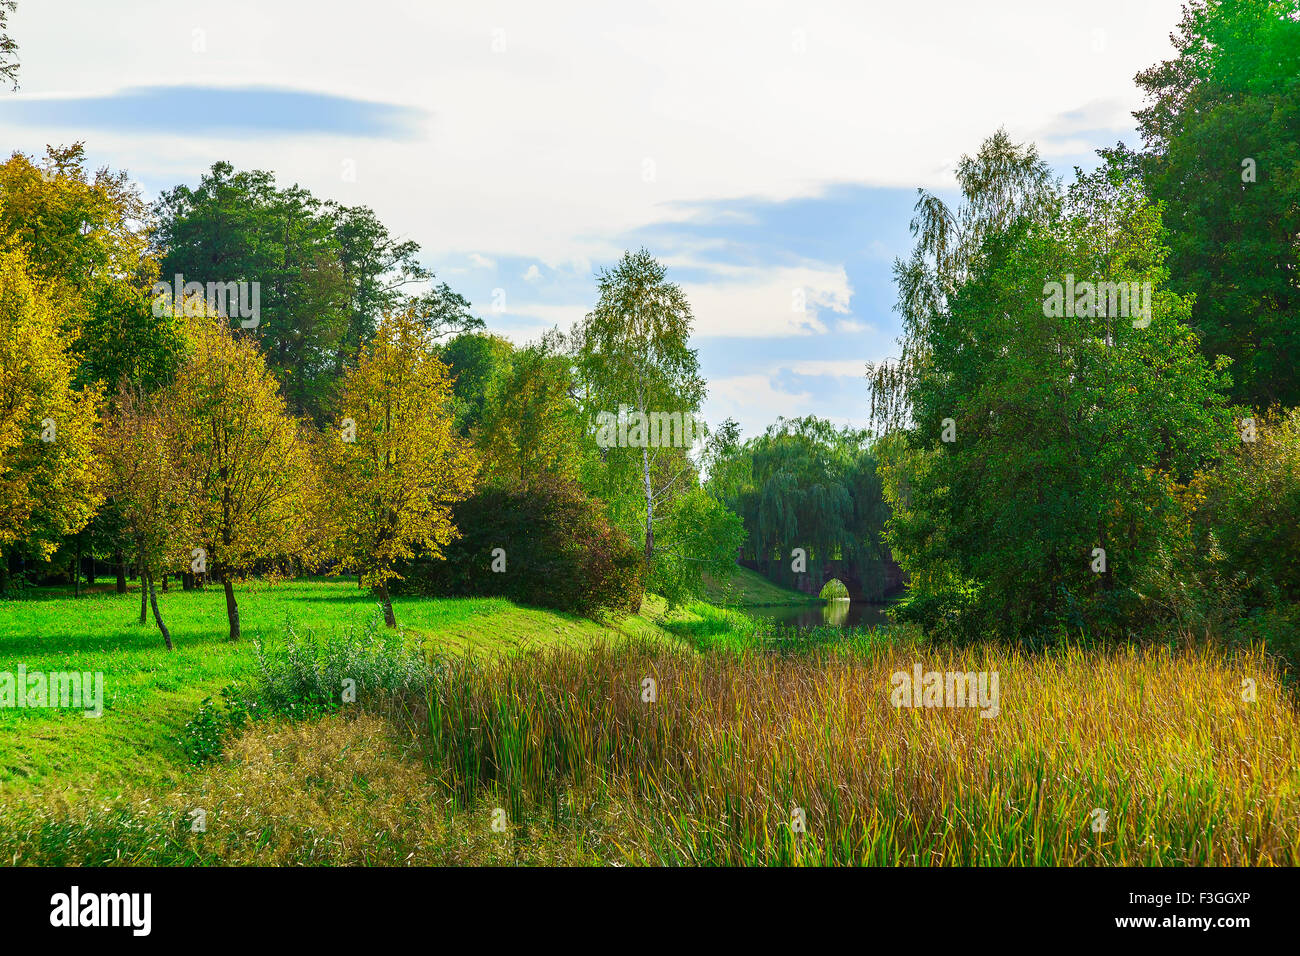 Autumn Nature with Colorful Trees and Bushes on Green Grass near ...